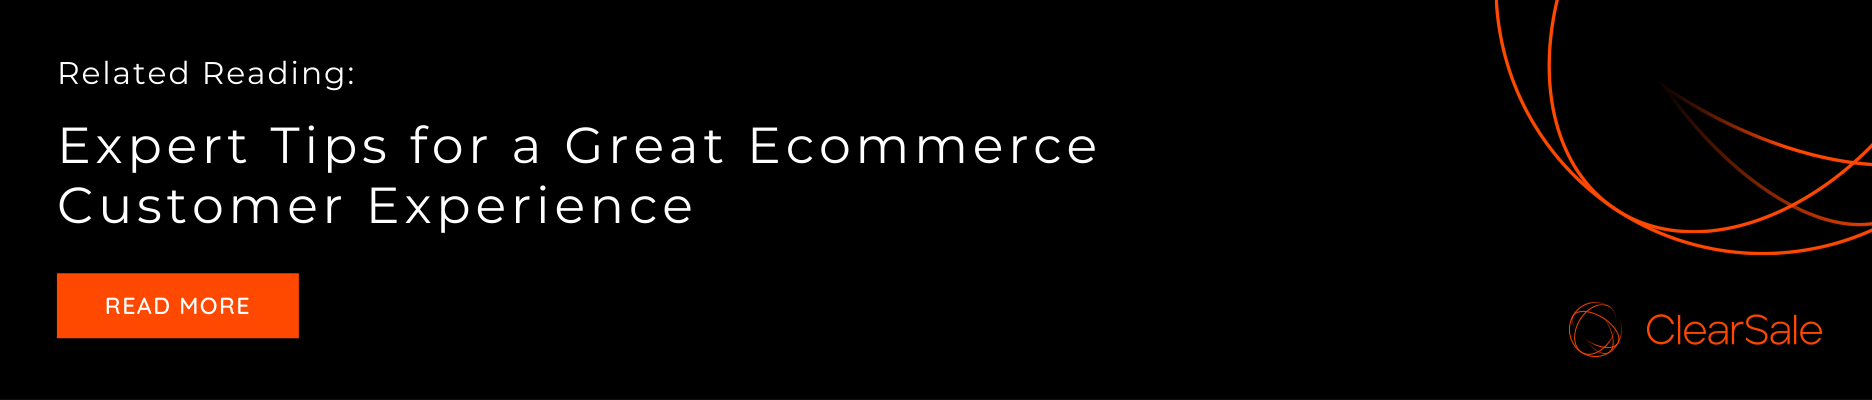 Related Reading: Expert Tips for a Great Ecommerce Customer Experience